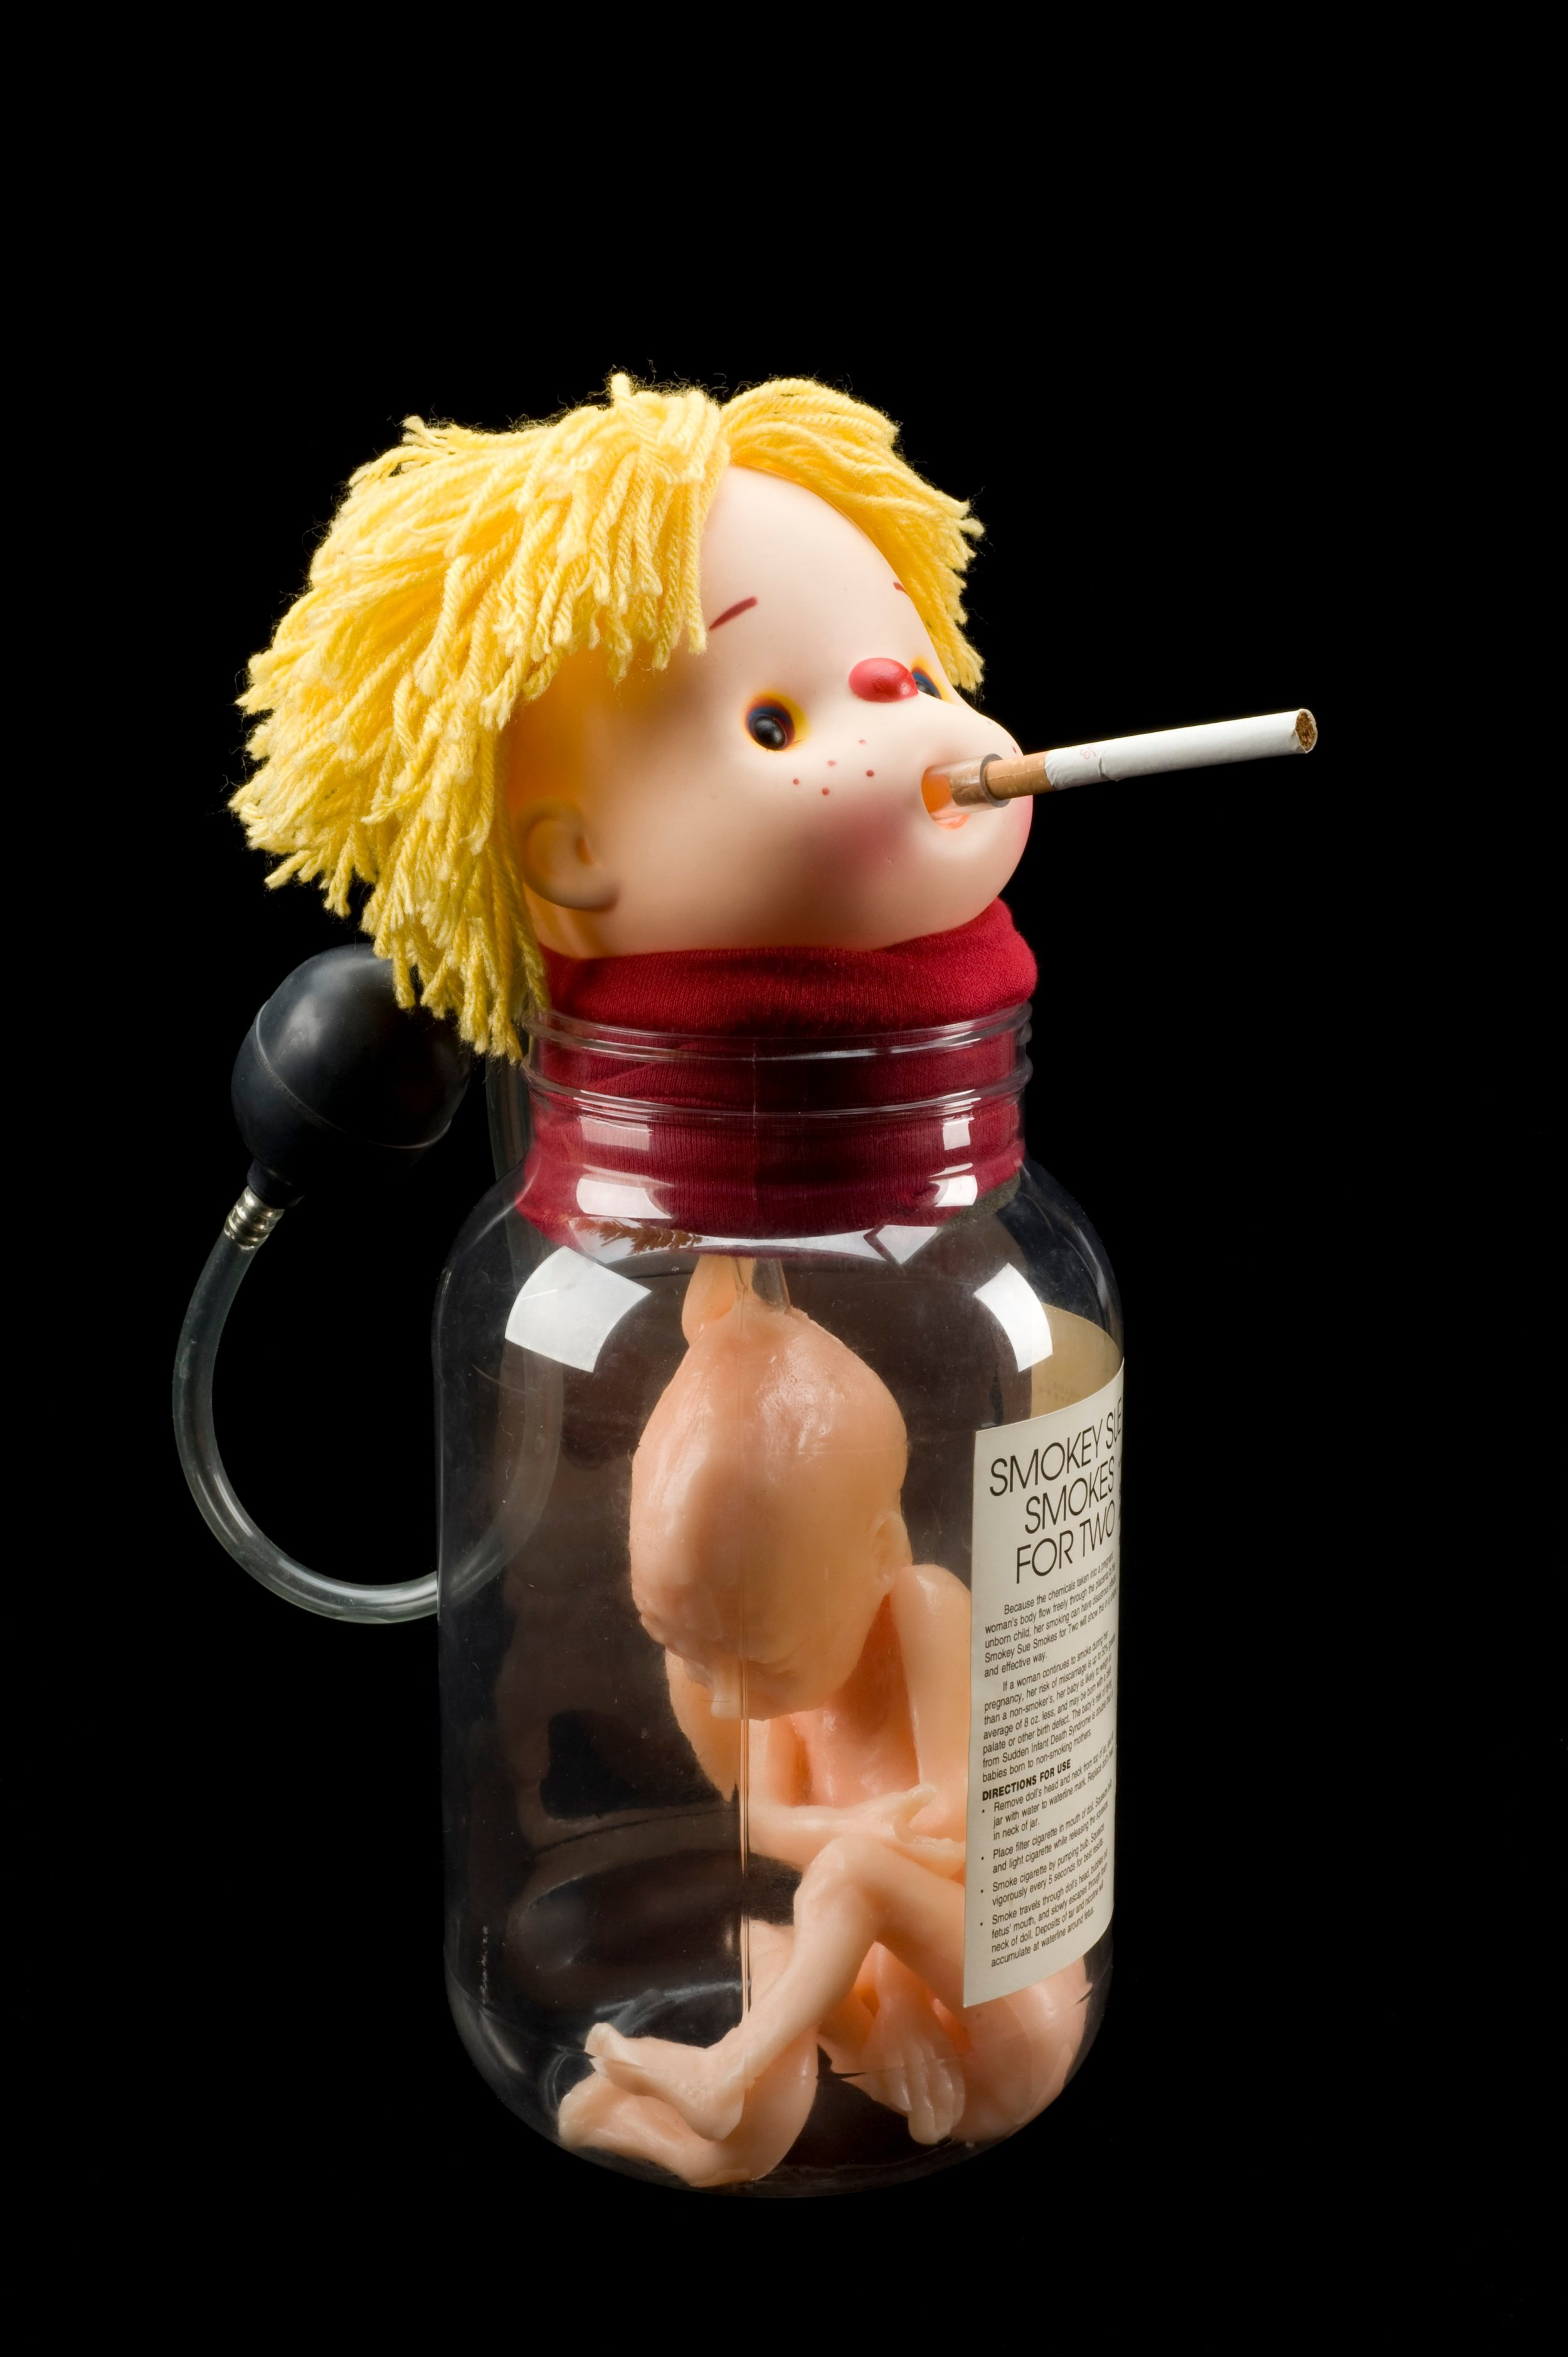 """""""Smokey Sue Smokes for Two"""" is just gem from the Wellcome Collection's Treasure trove of historical medical images. 